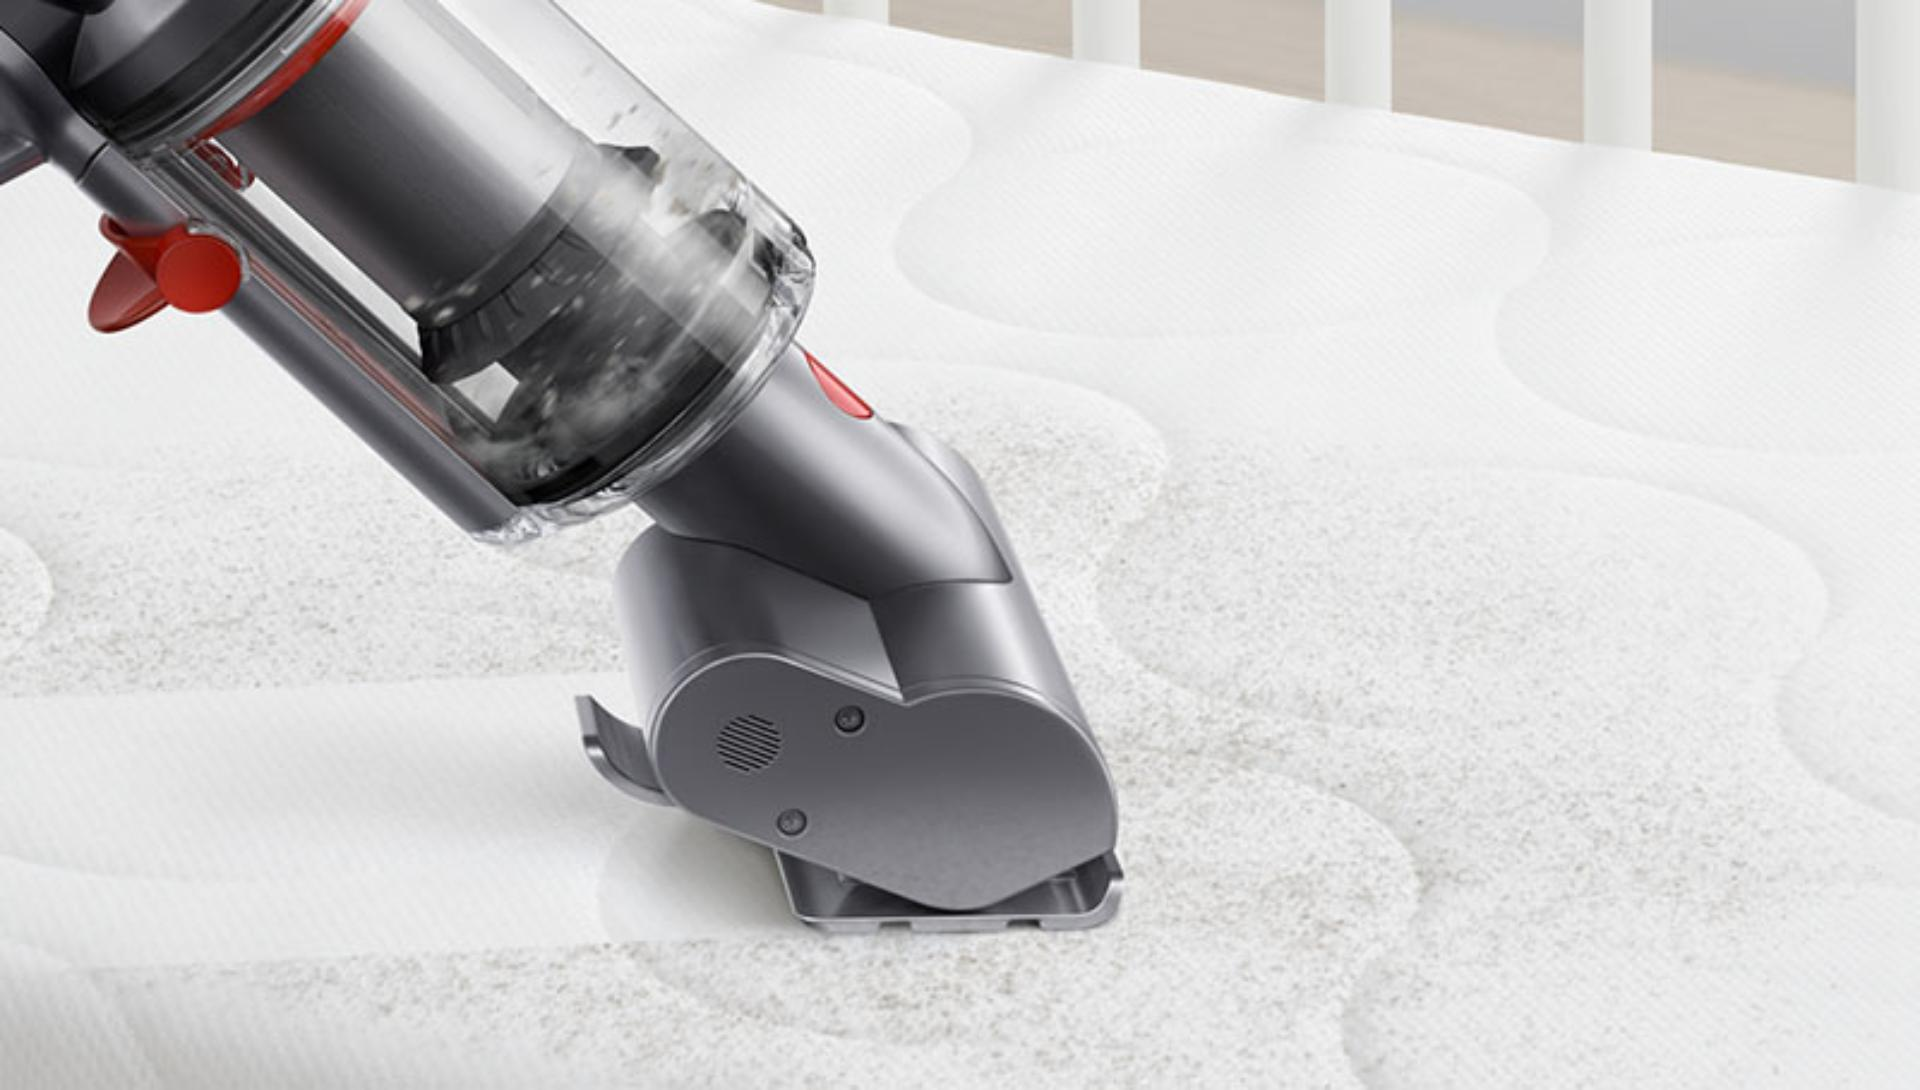 Dyson Micro 1.5kg vacuum cleaning a mattress.